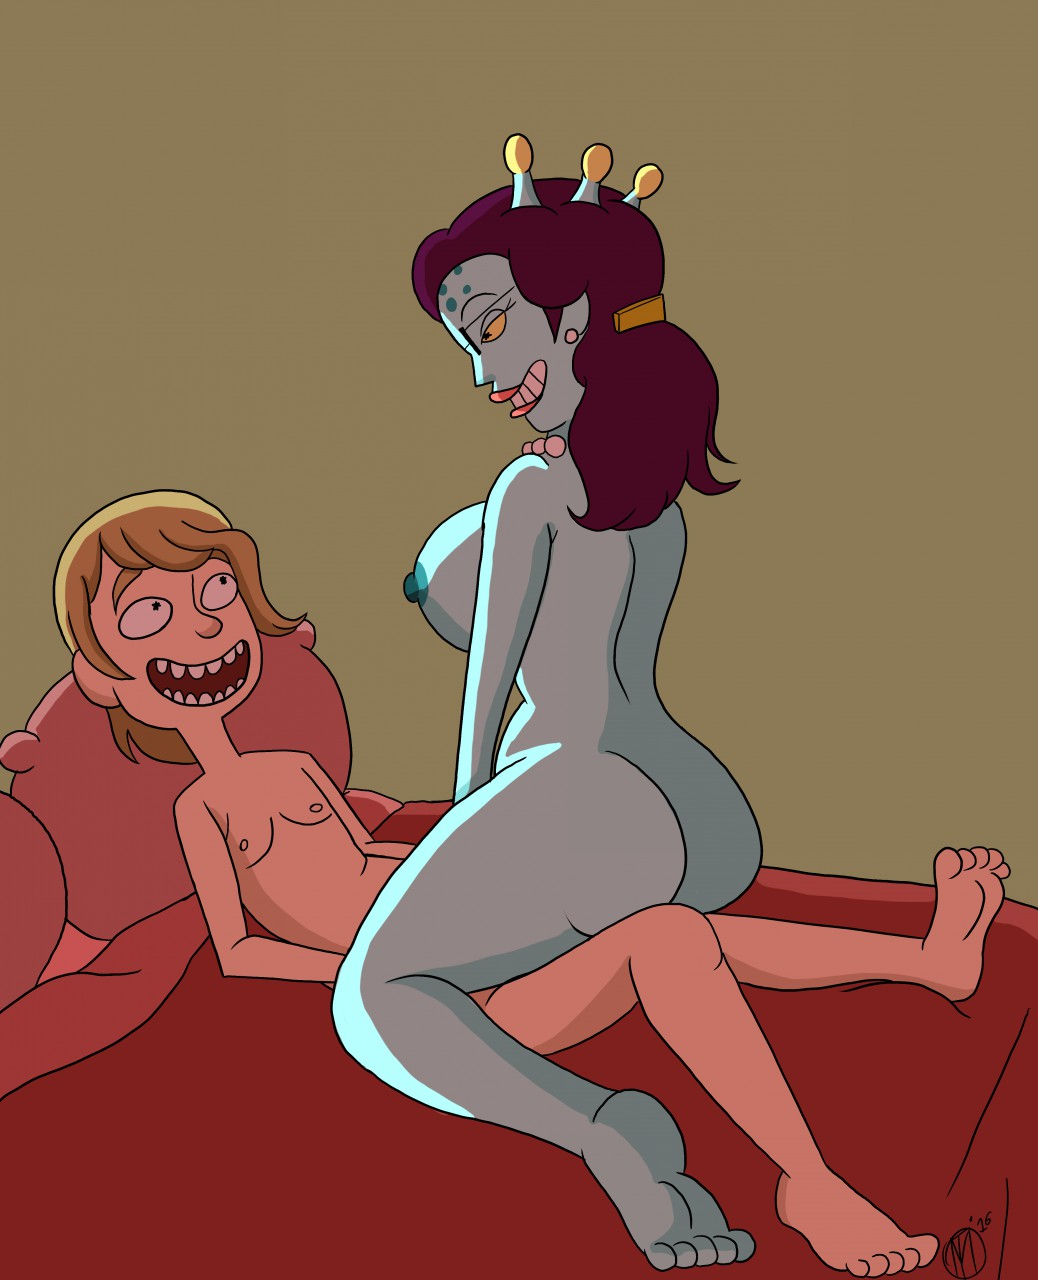 nude morty jessica and rick Phineas and ferb season 4 episode 34